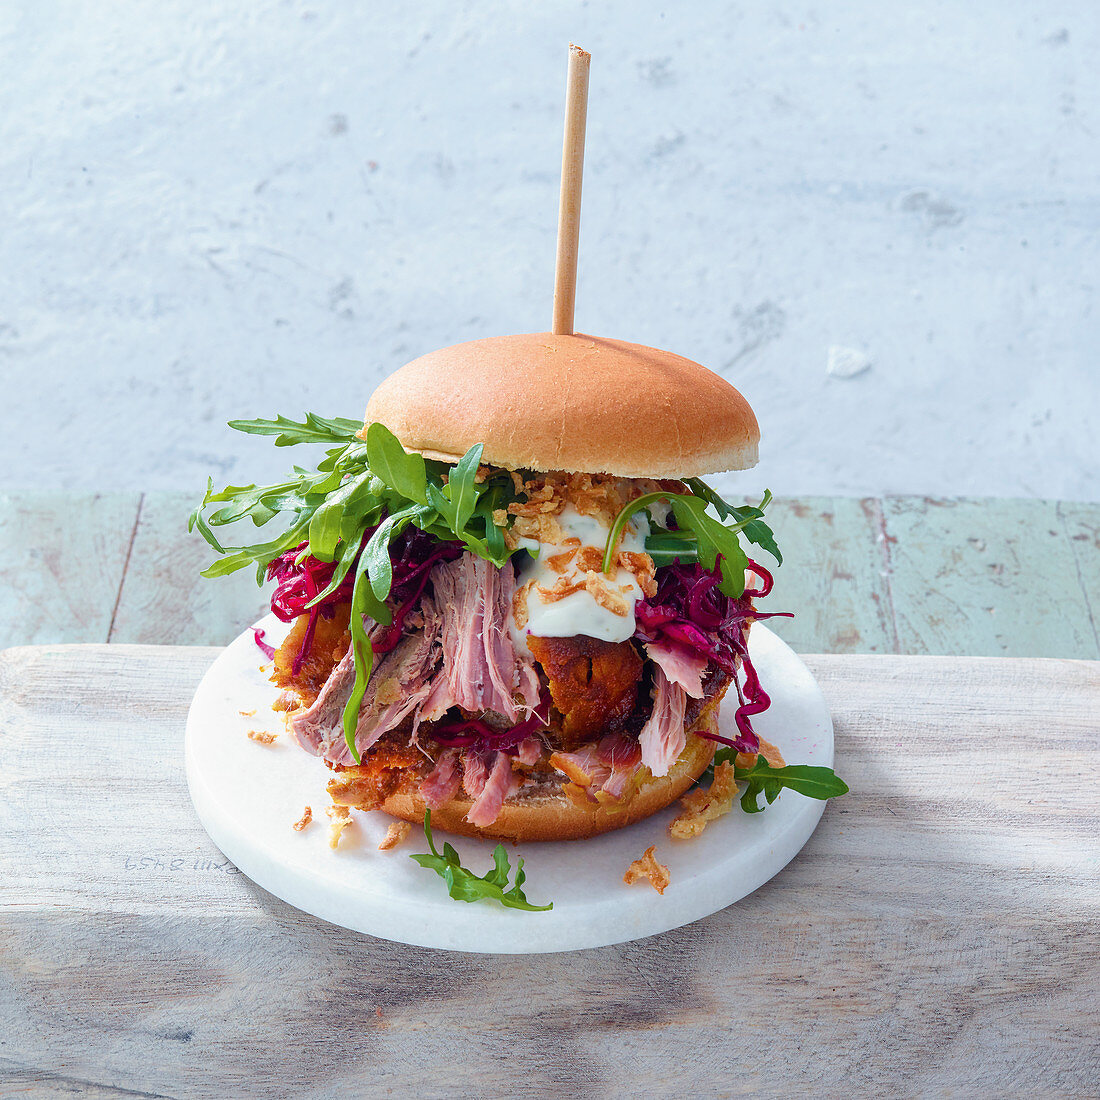 A grilled pulled beef burger with tarragon aioli